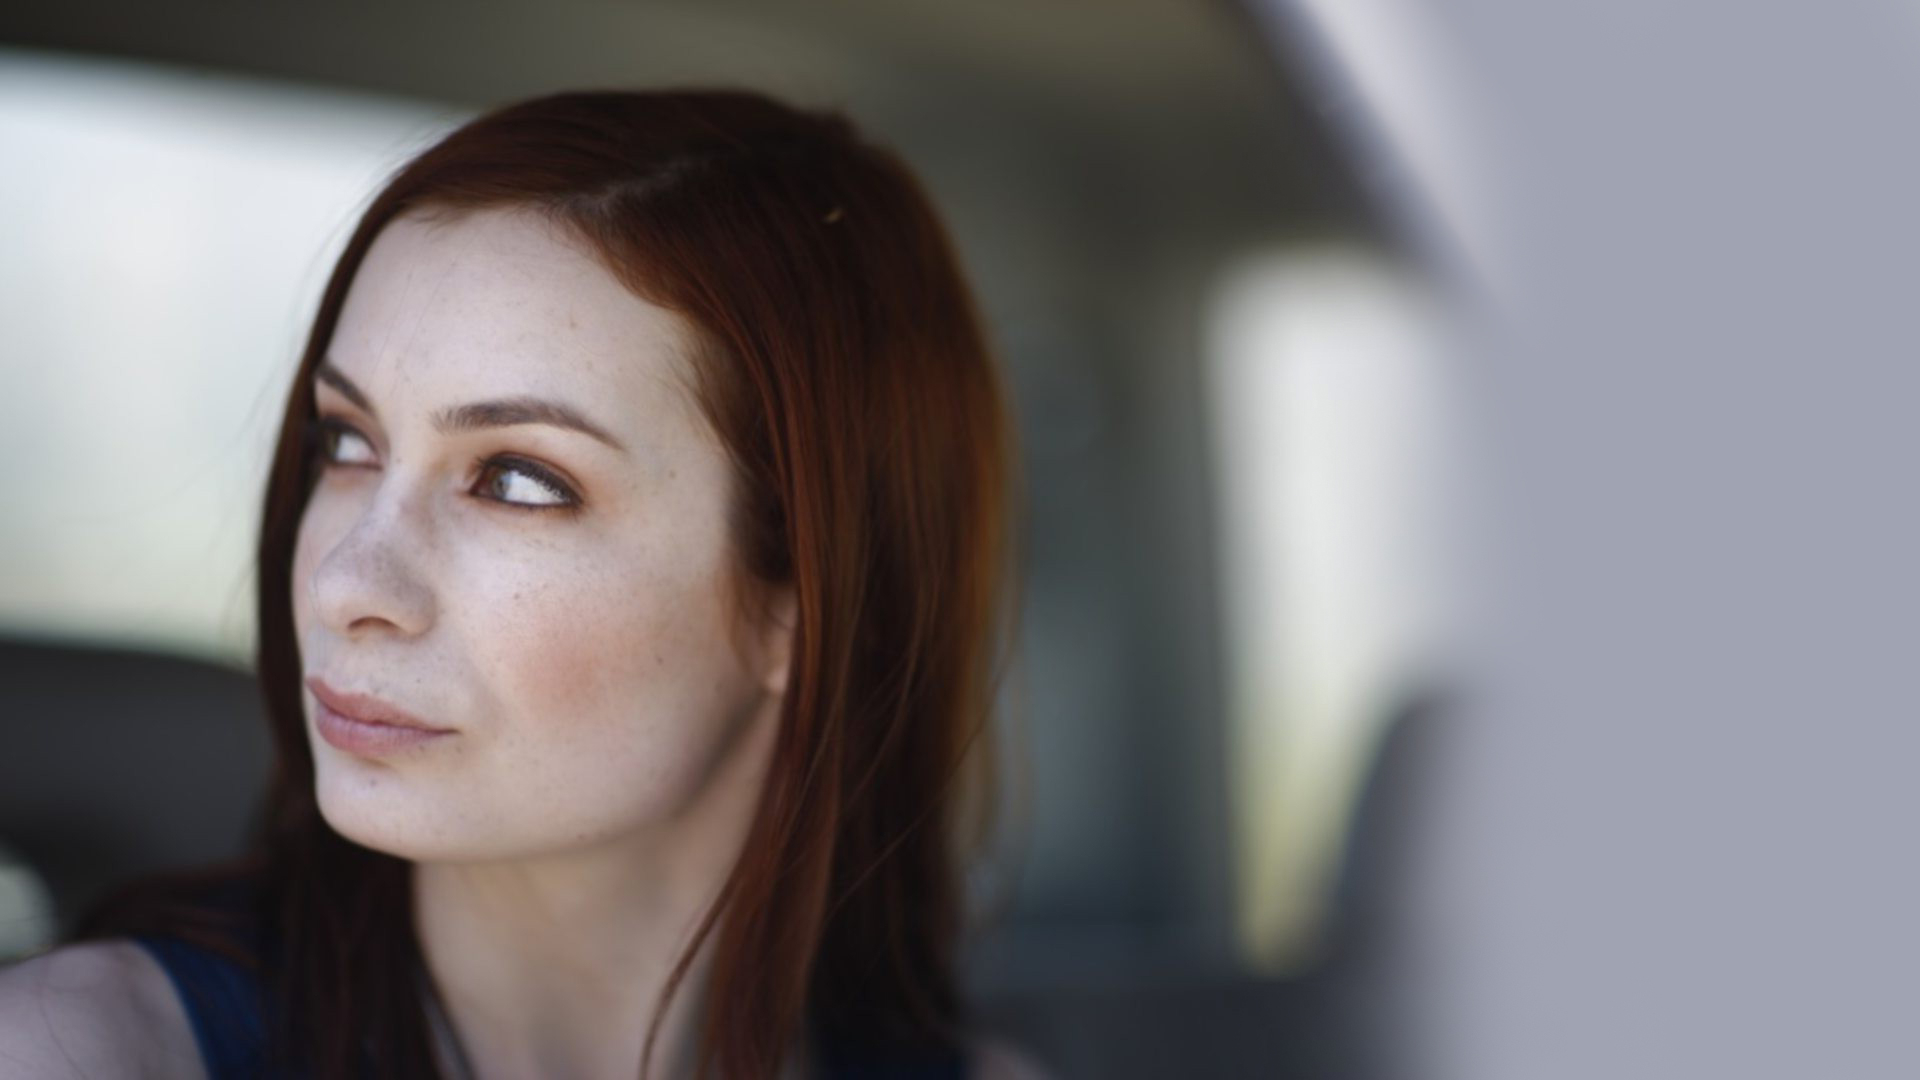 1920x1080 - Felicia Day Wallpapers 24